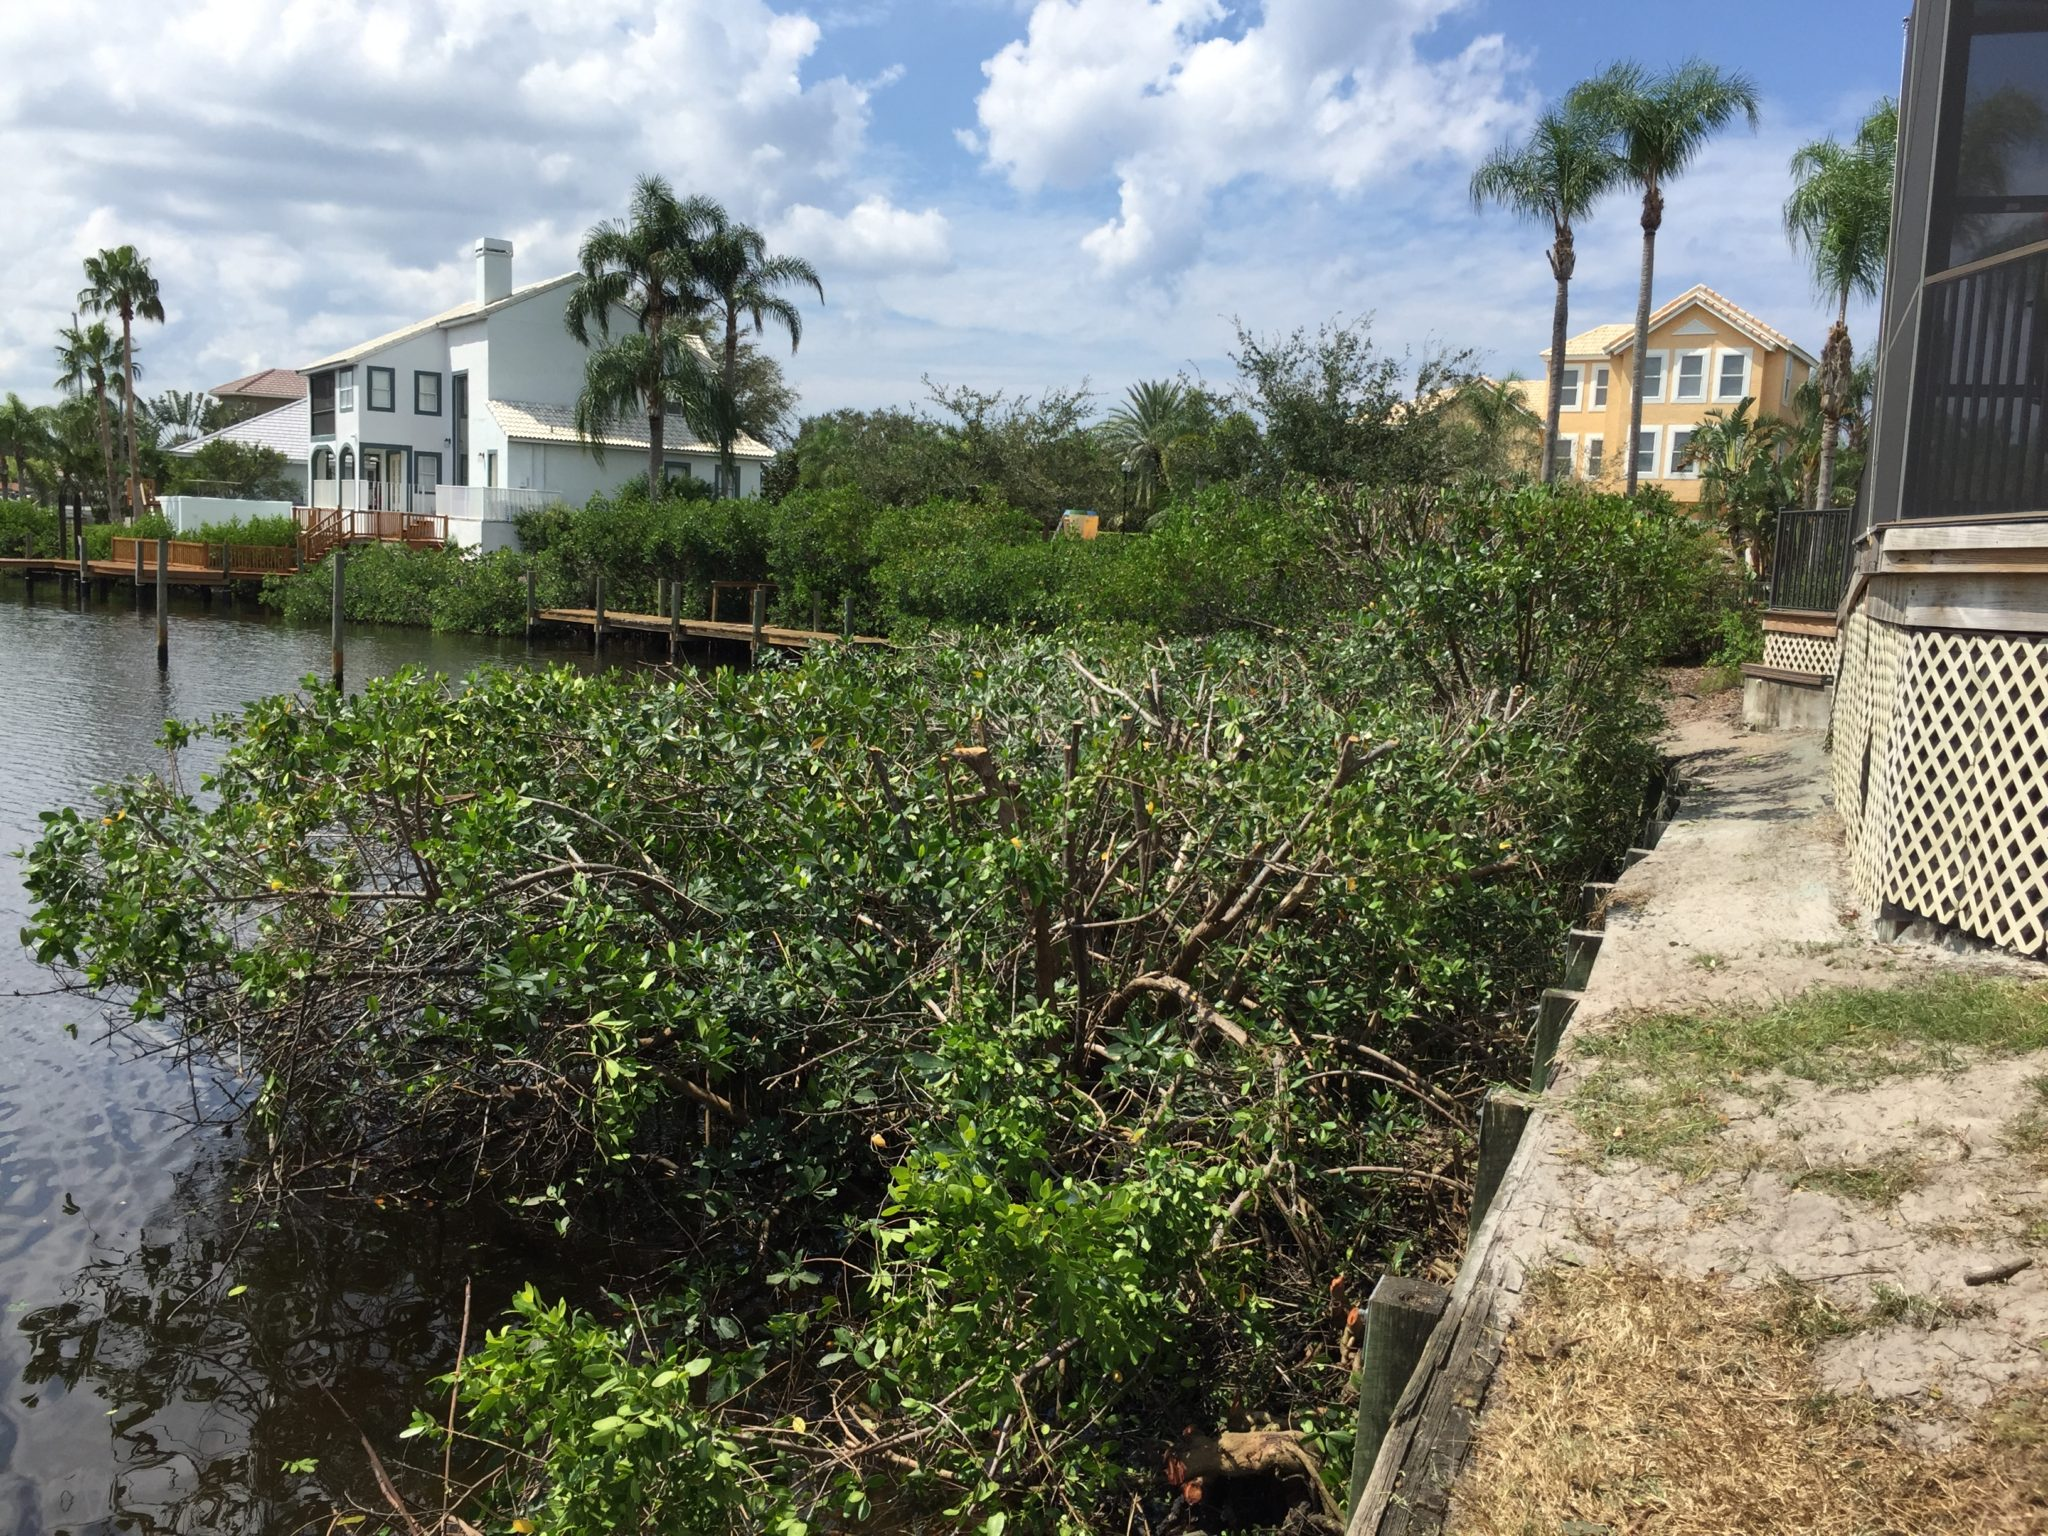 We trimmed the mangroves for the Symphony Isles Master Association along the beach and behind the clubhouse